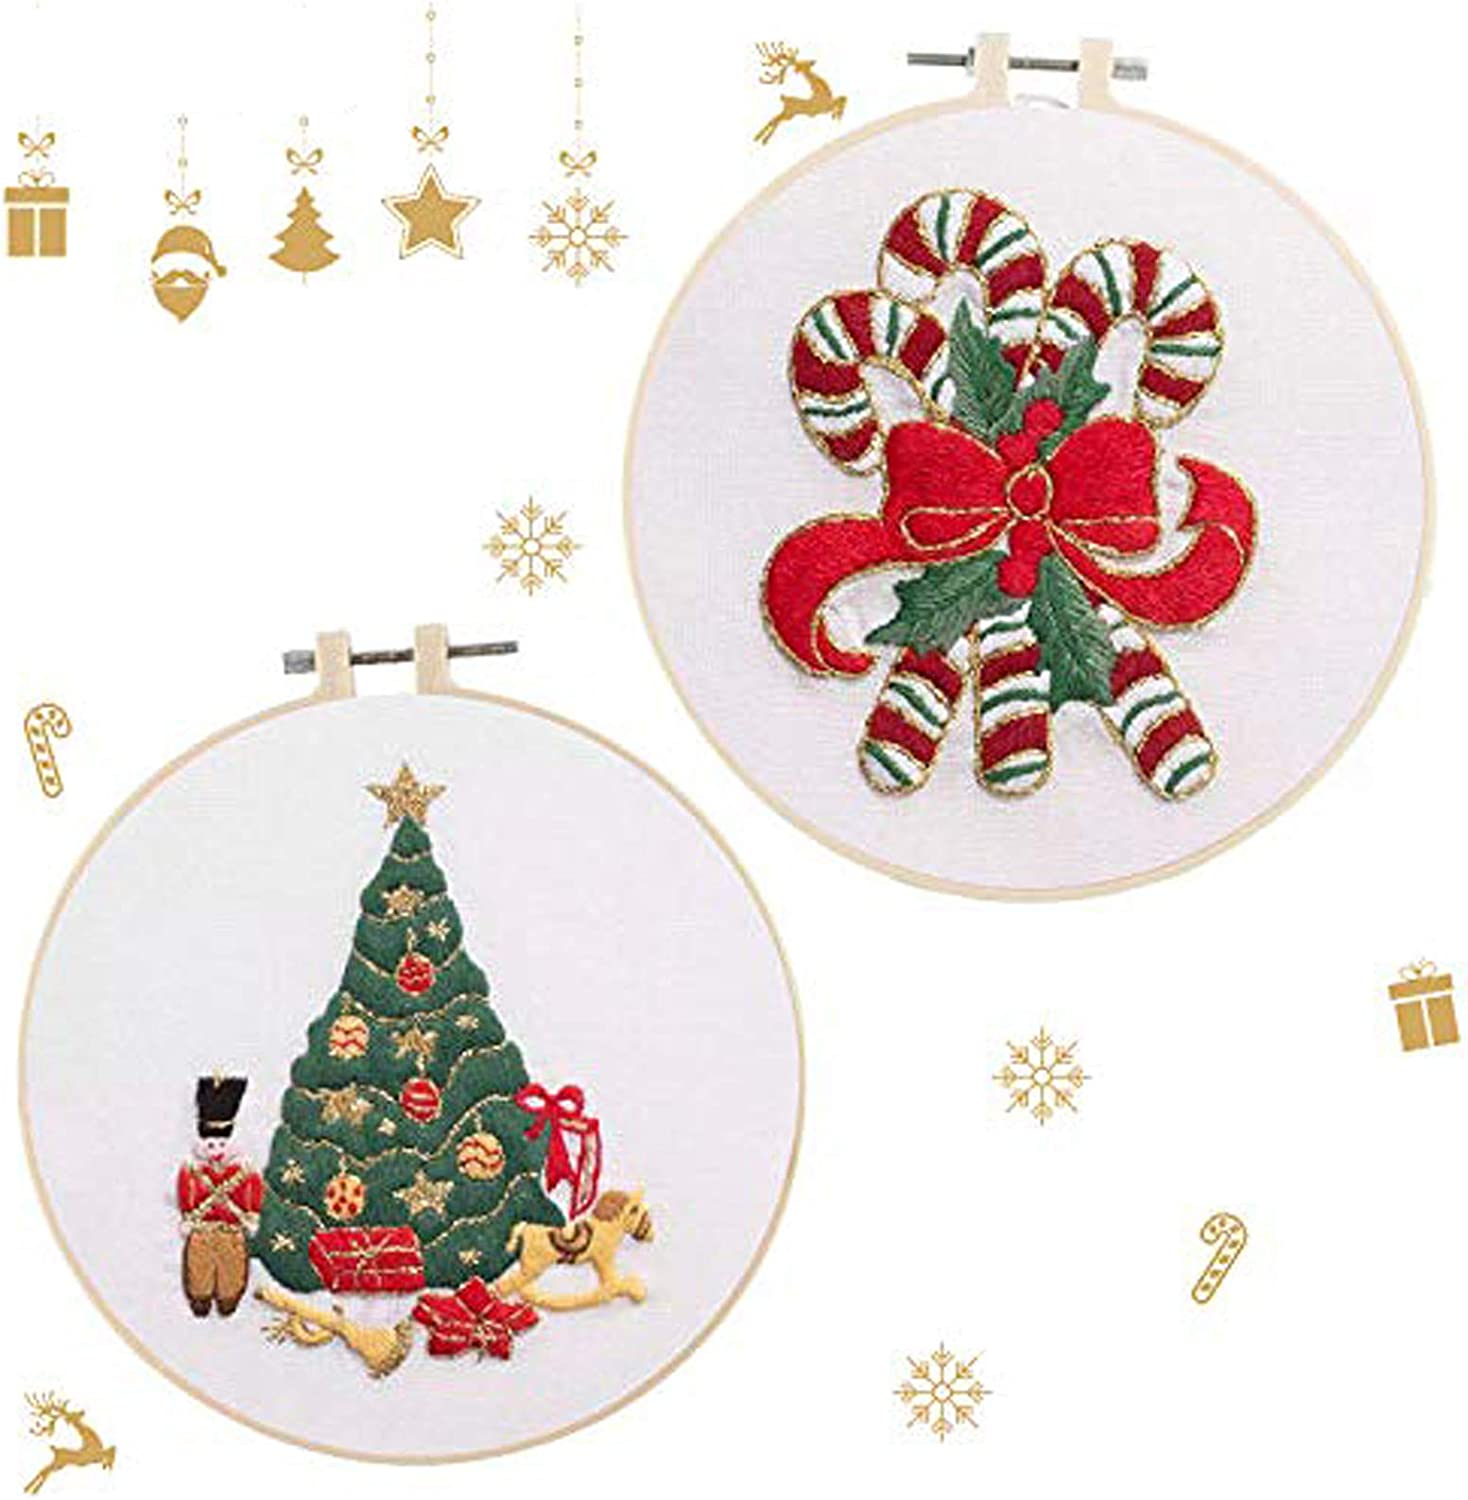 2 Sets Christmas Embroidery Cross P Now free shipping Starter Stitch Daily bargain sale Kit